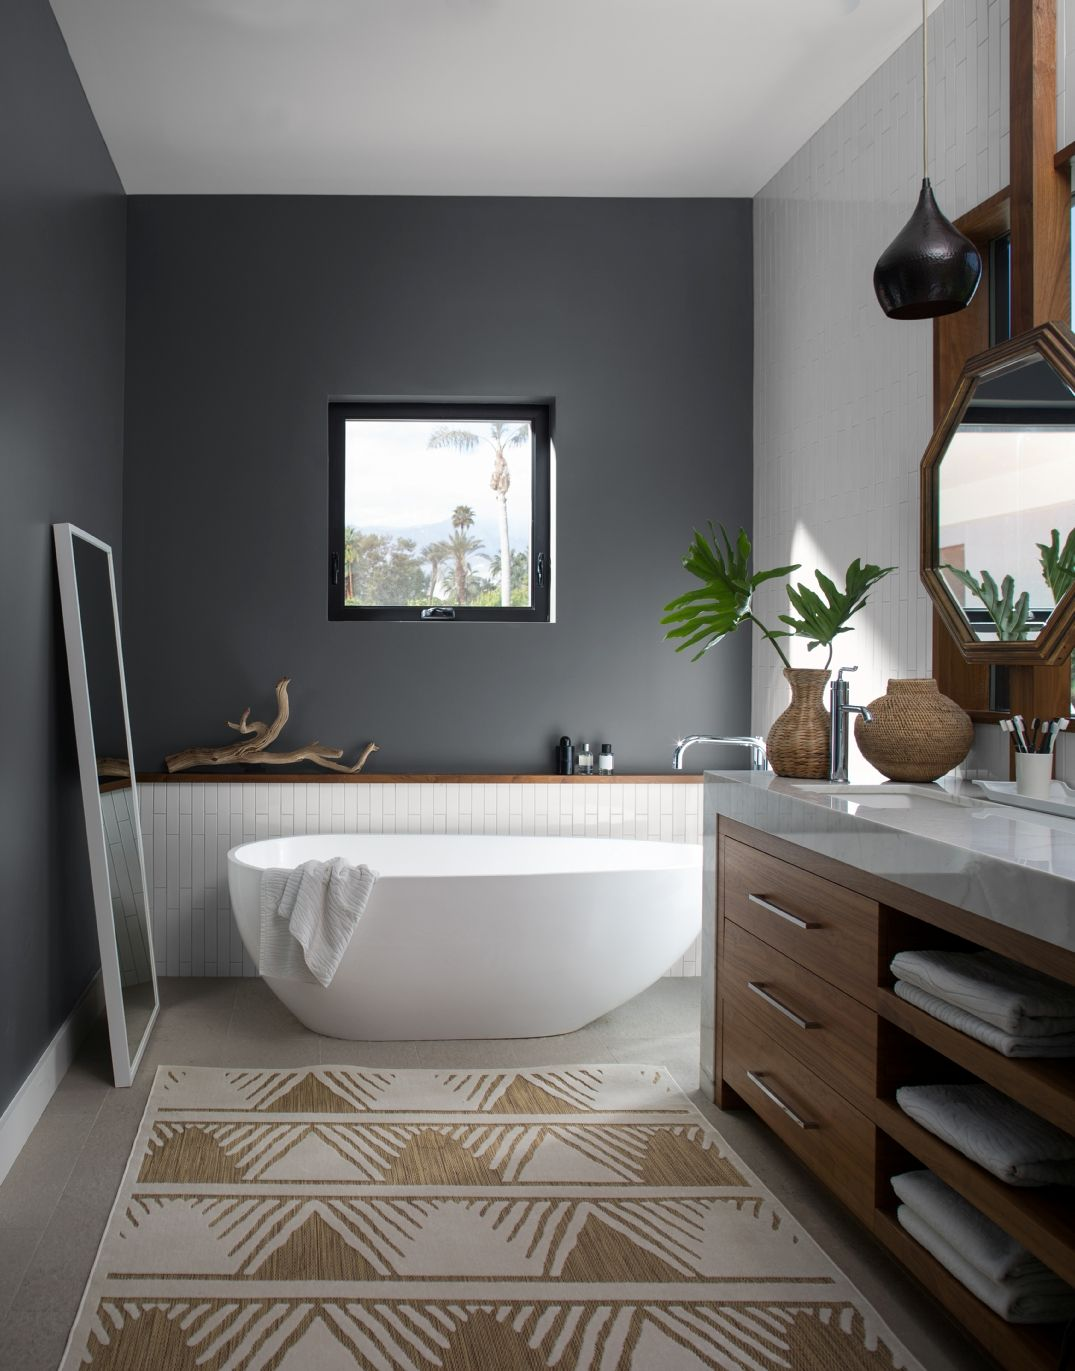 Bathroom Paint Color Ideas Inspiration Benjamin Moore Best Bathroom Paint Colors Tranquil Bathroom Bathroom Paint Colors